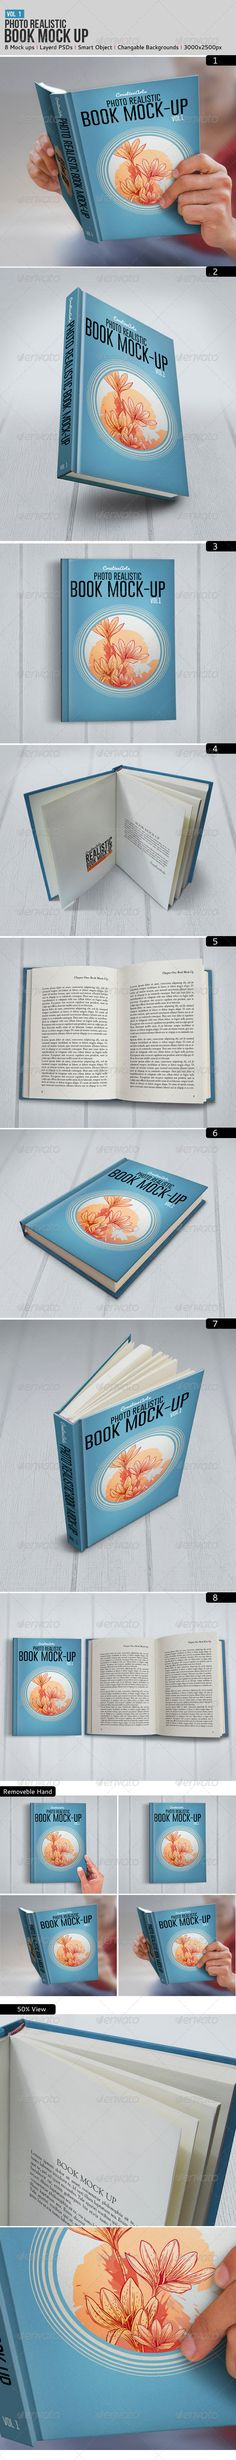 Photo Realistic Book Mock up High Resolution 3000x2500 pixels 8 Fully Layered .PSD file, / Light, Shadow, Hand, Book, Backgroun